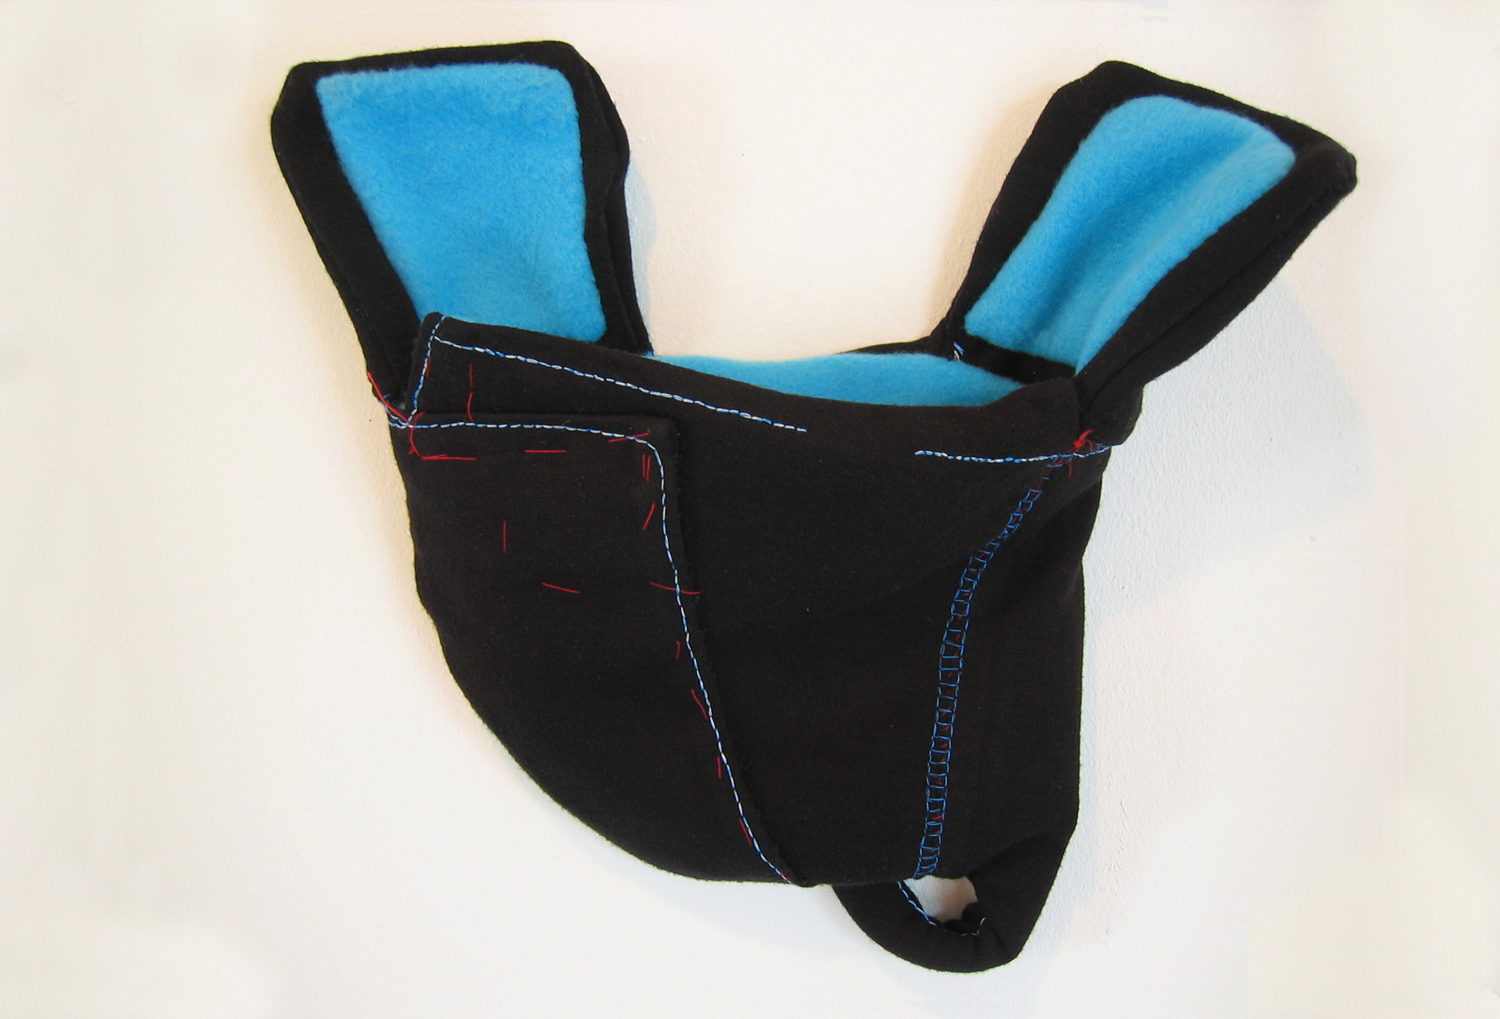 """2002 Proto-form. Form as """"functional"""" object. Wool and polyester fleece. Stitching. About 12"""" x 10"""""""